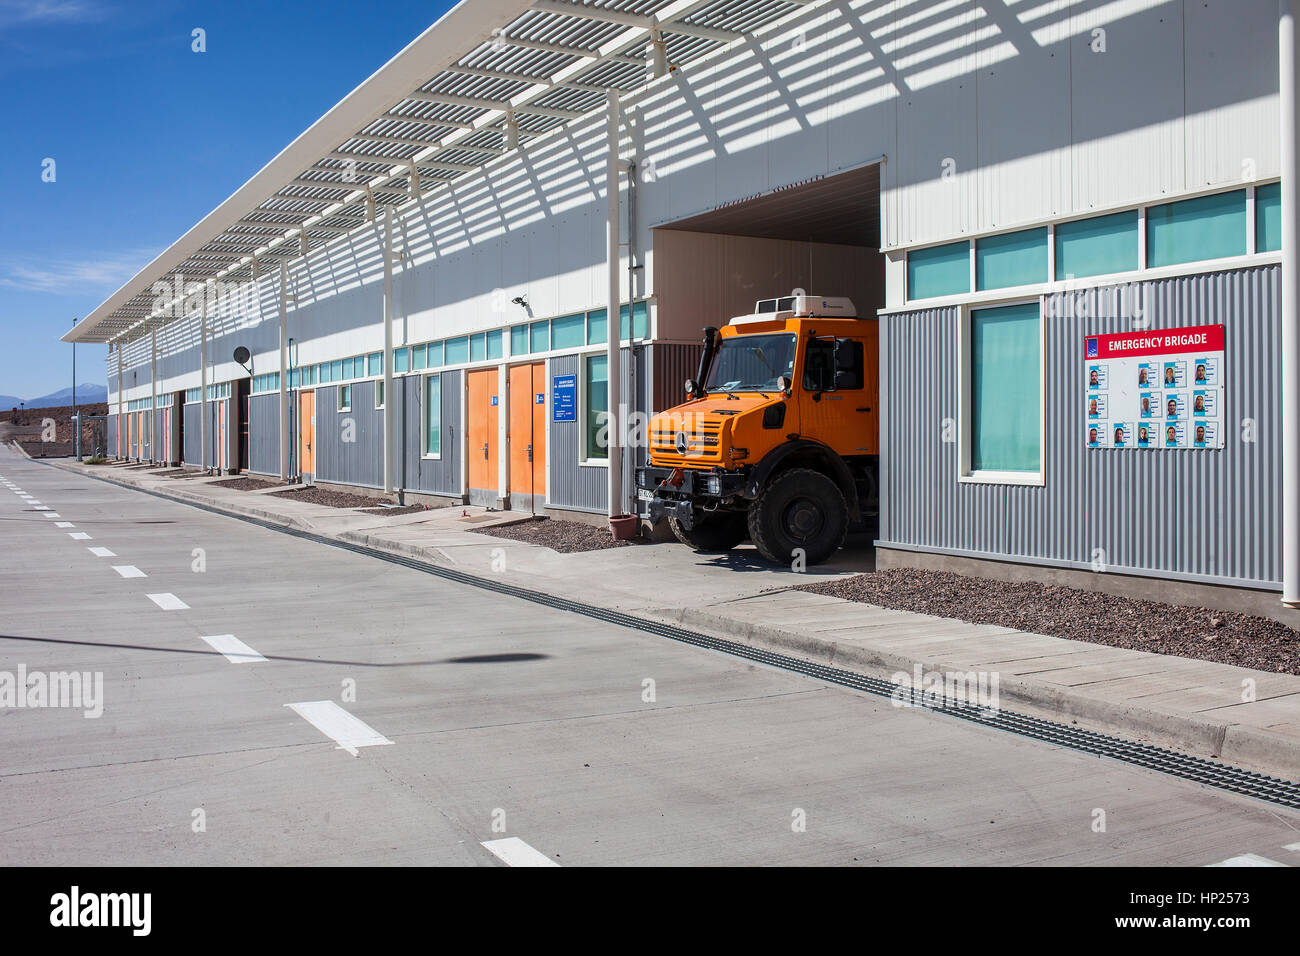 Emergency brigade, ALMA observatory, technical building in Operations Support Facility (OSF),  Atacama desert. Region - Stock Image